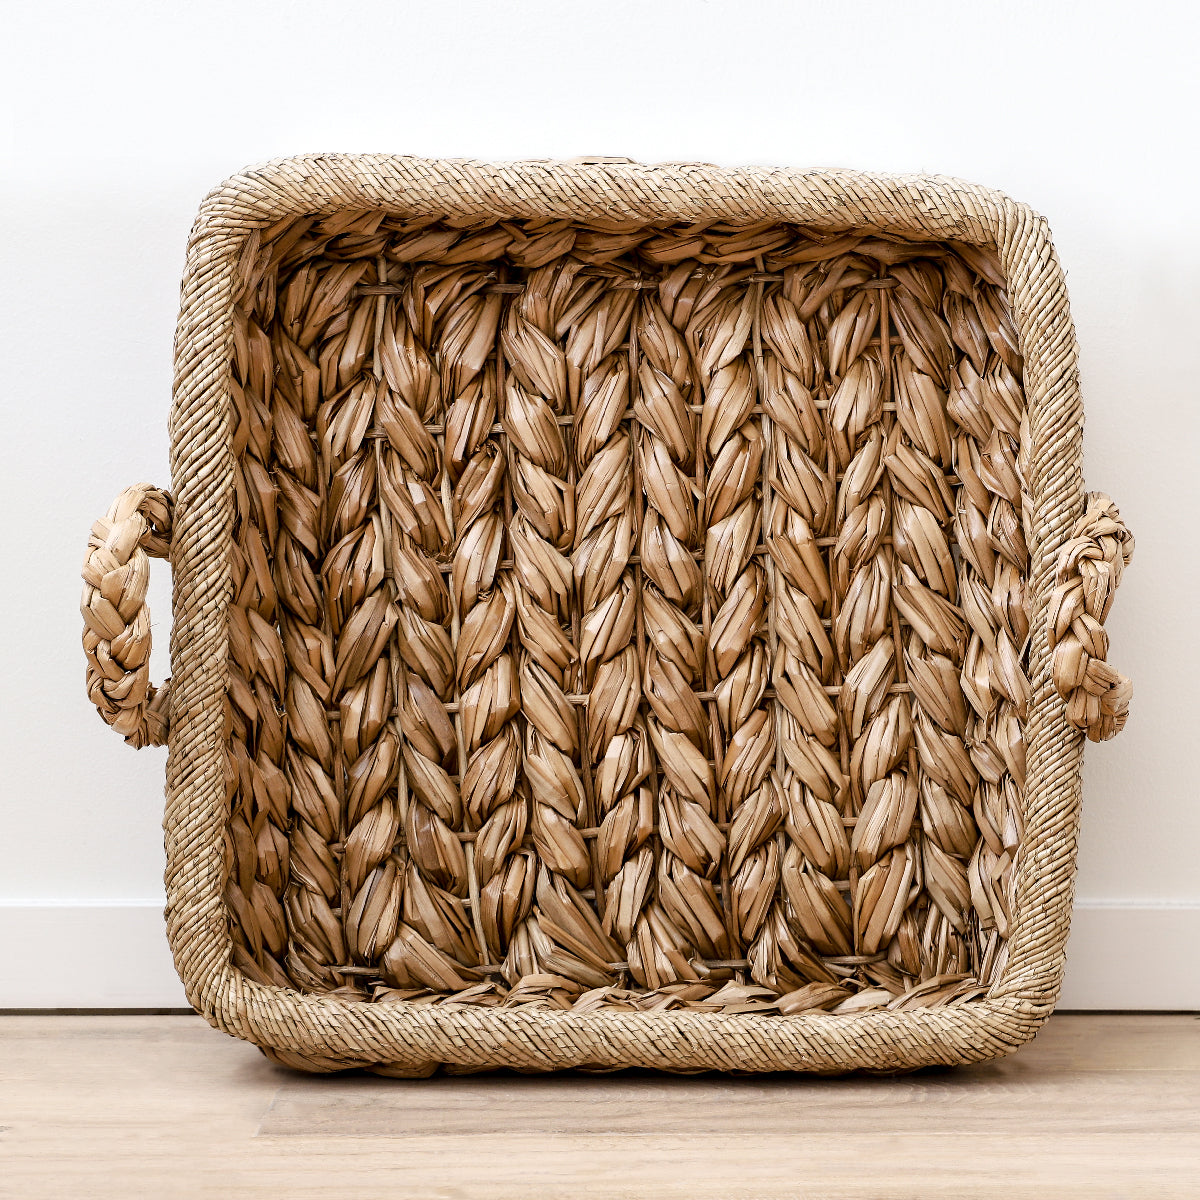 Kenley Tray made of woven seagrass by Made Goods